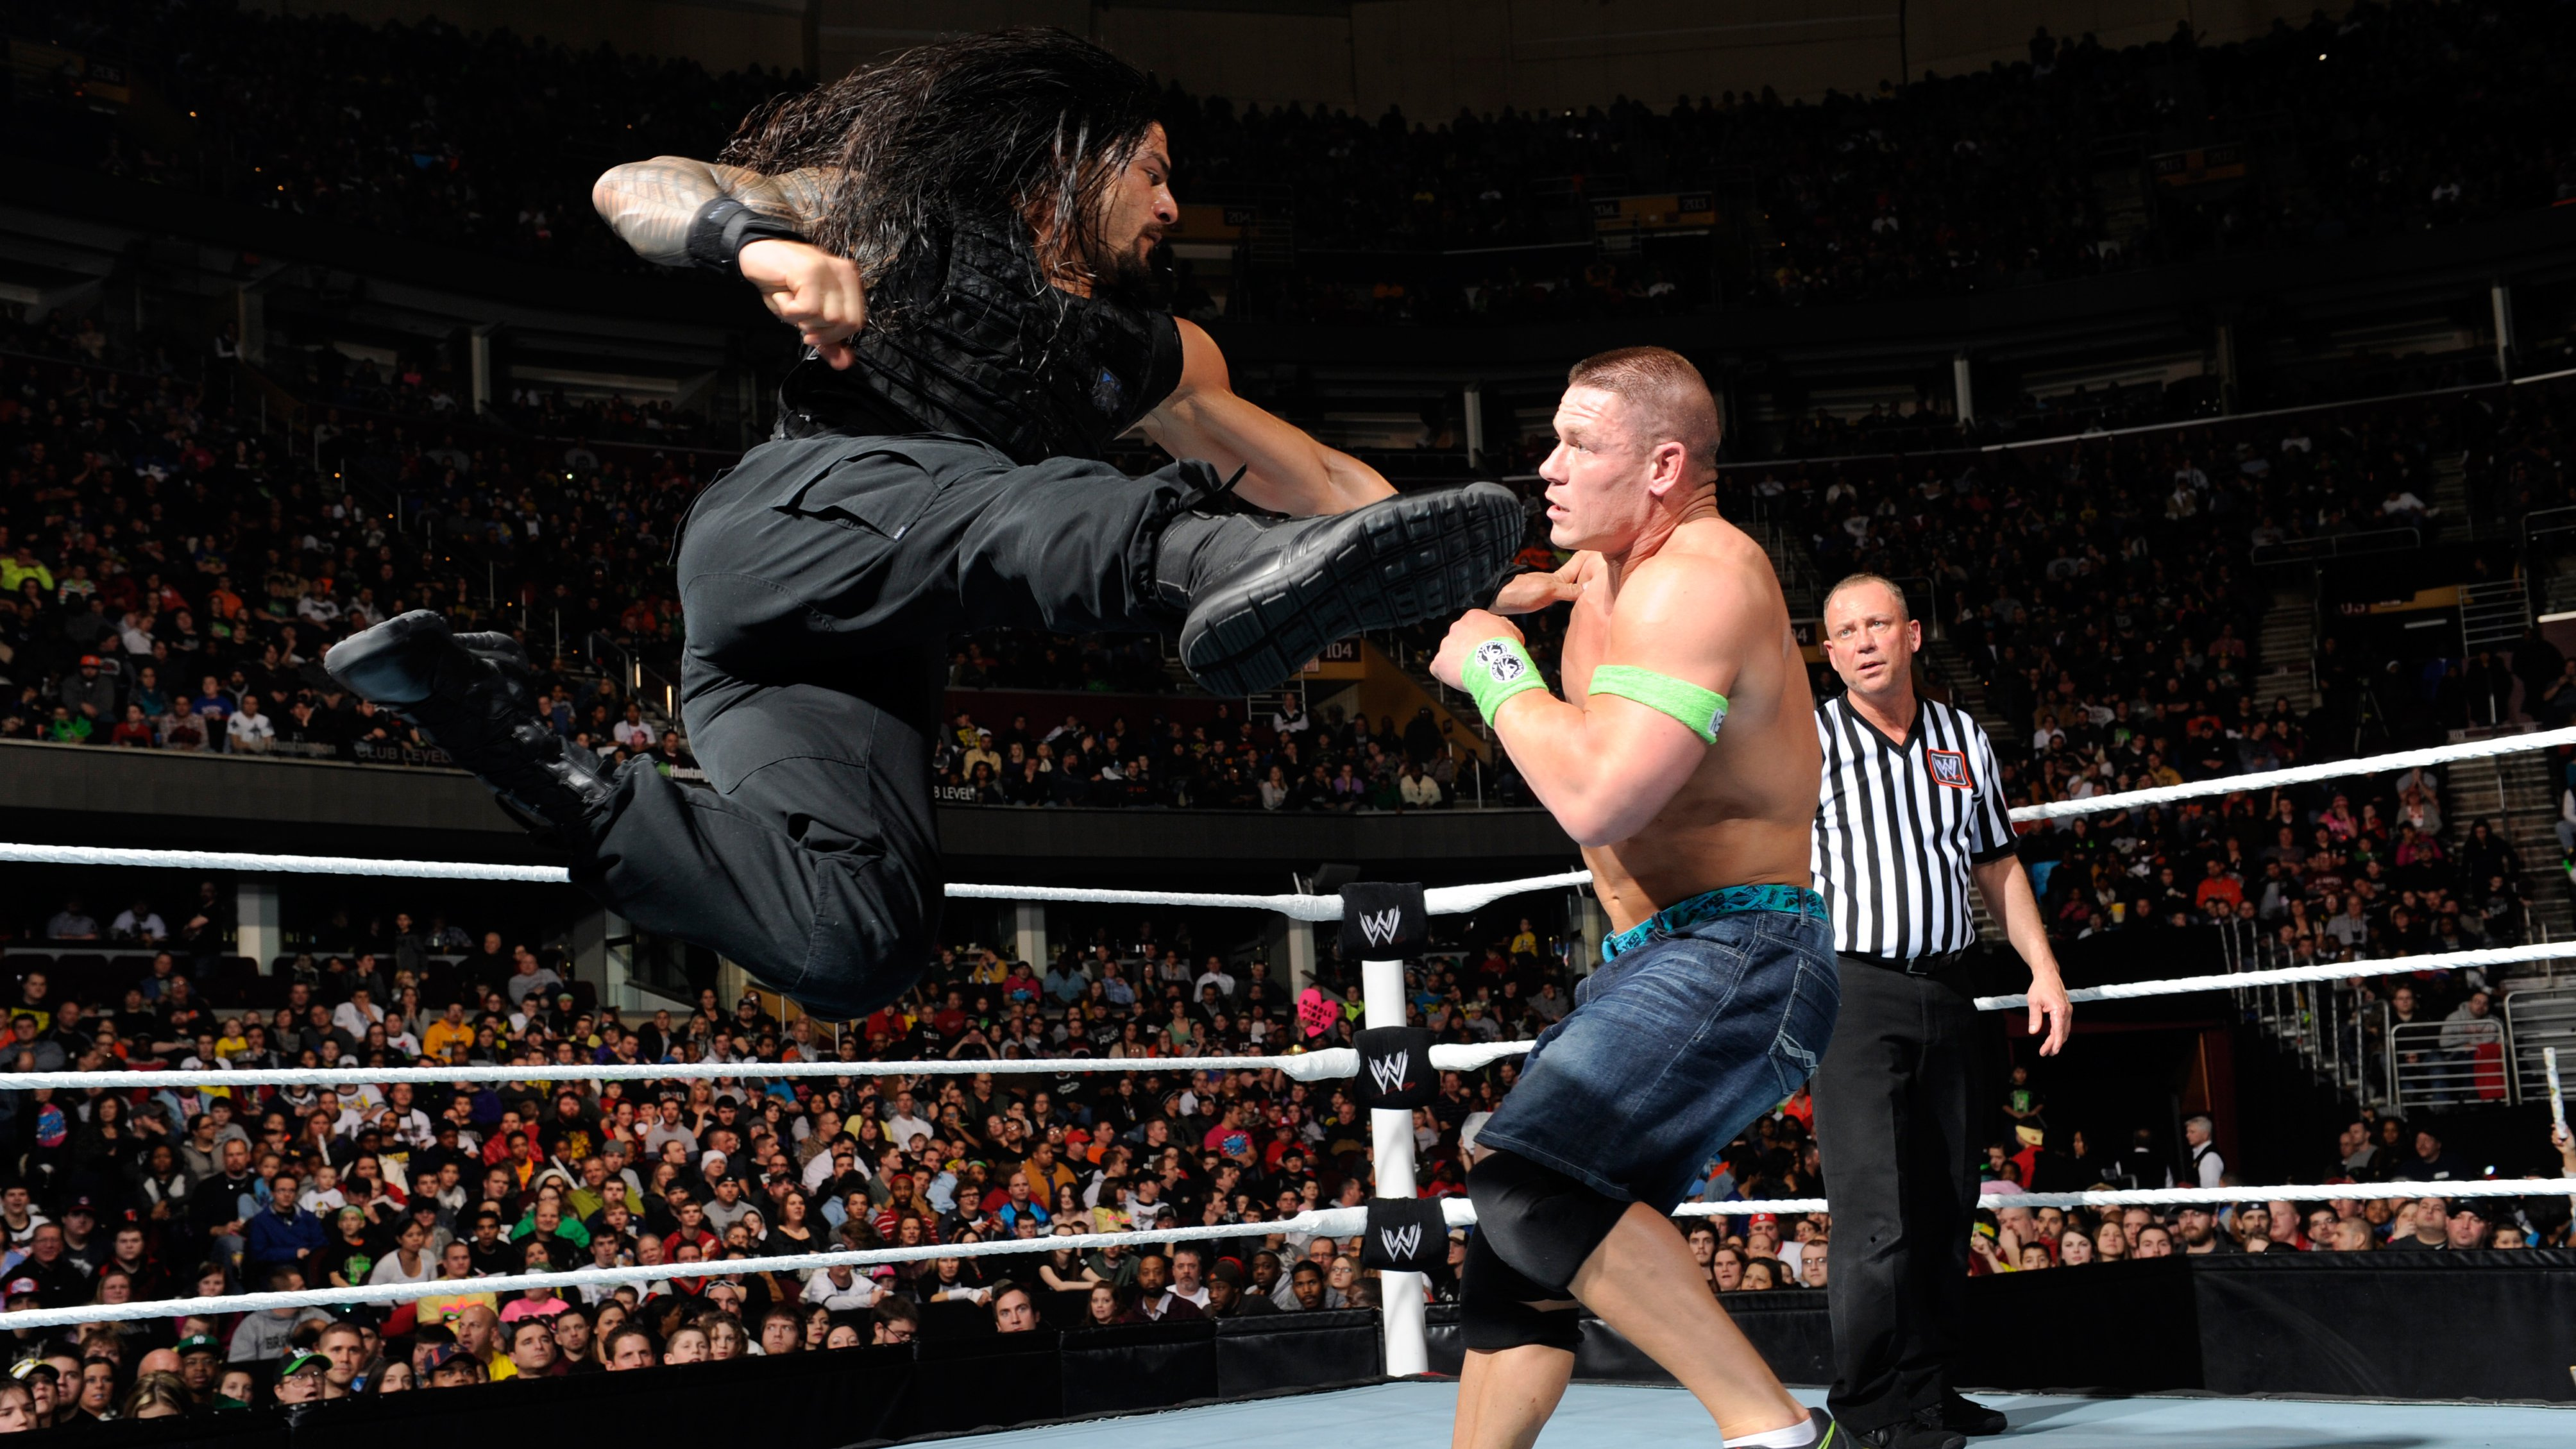 Wwe hell in a cell 2018: roman reigns defeating braun strowman and.